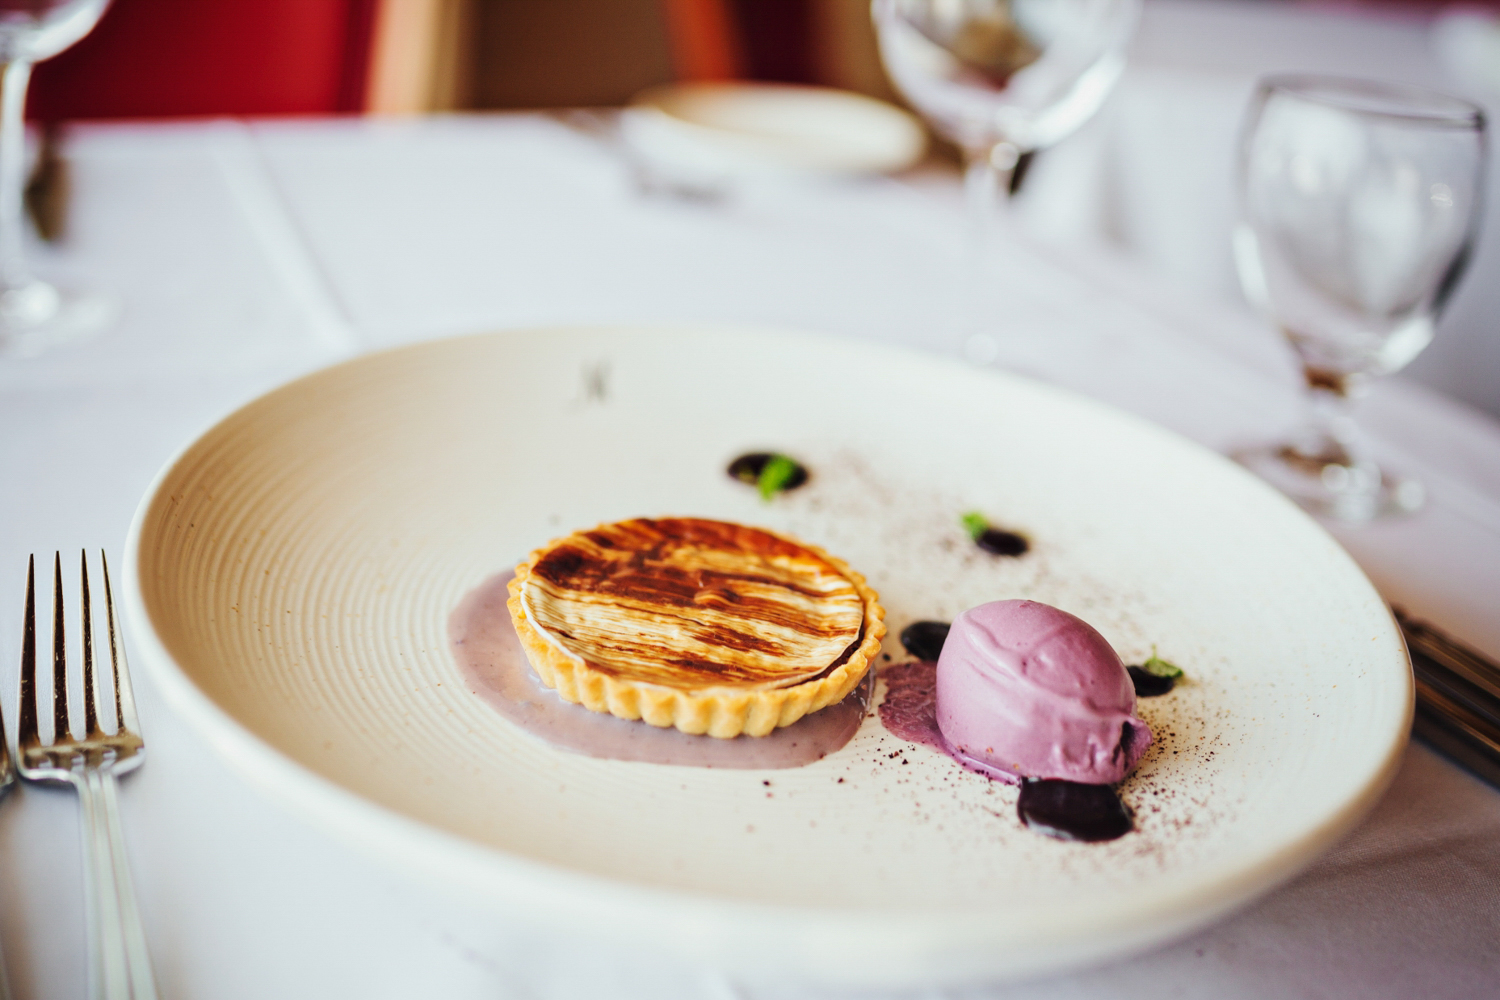 Beautiful image of delicious tart with berry ice cream quinelle in food photo shoot.